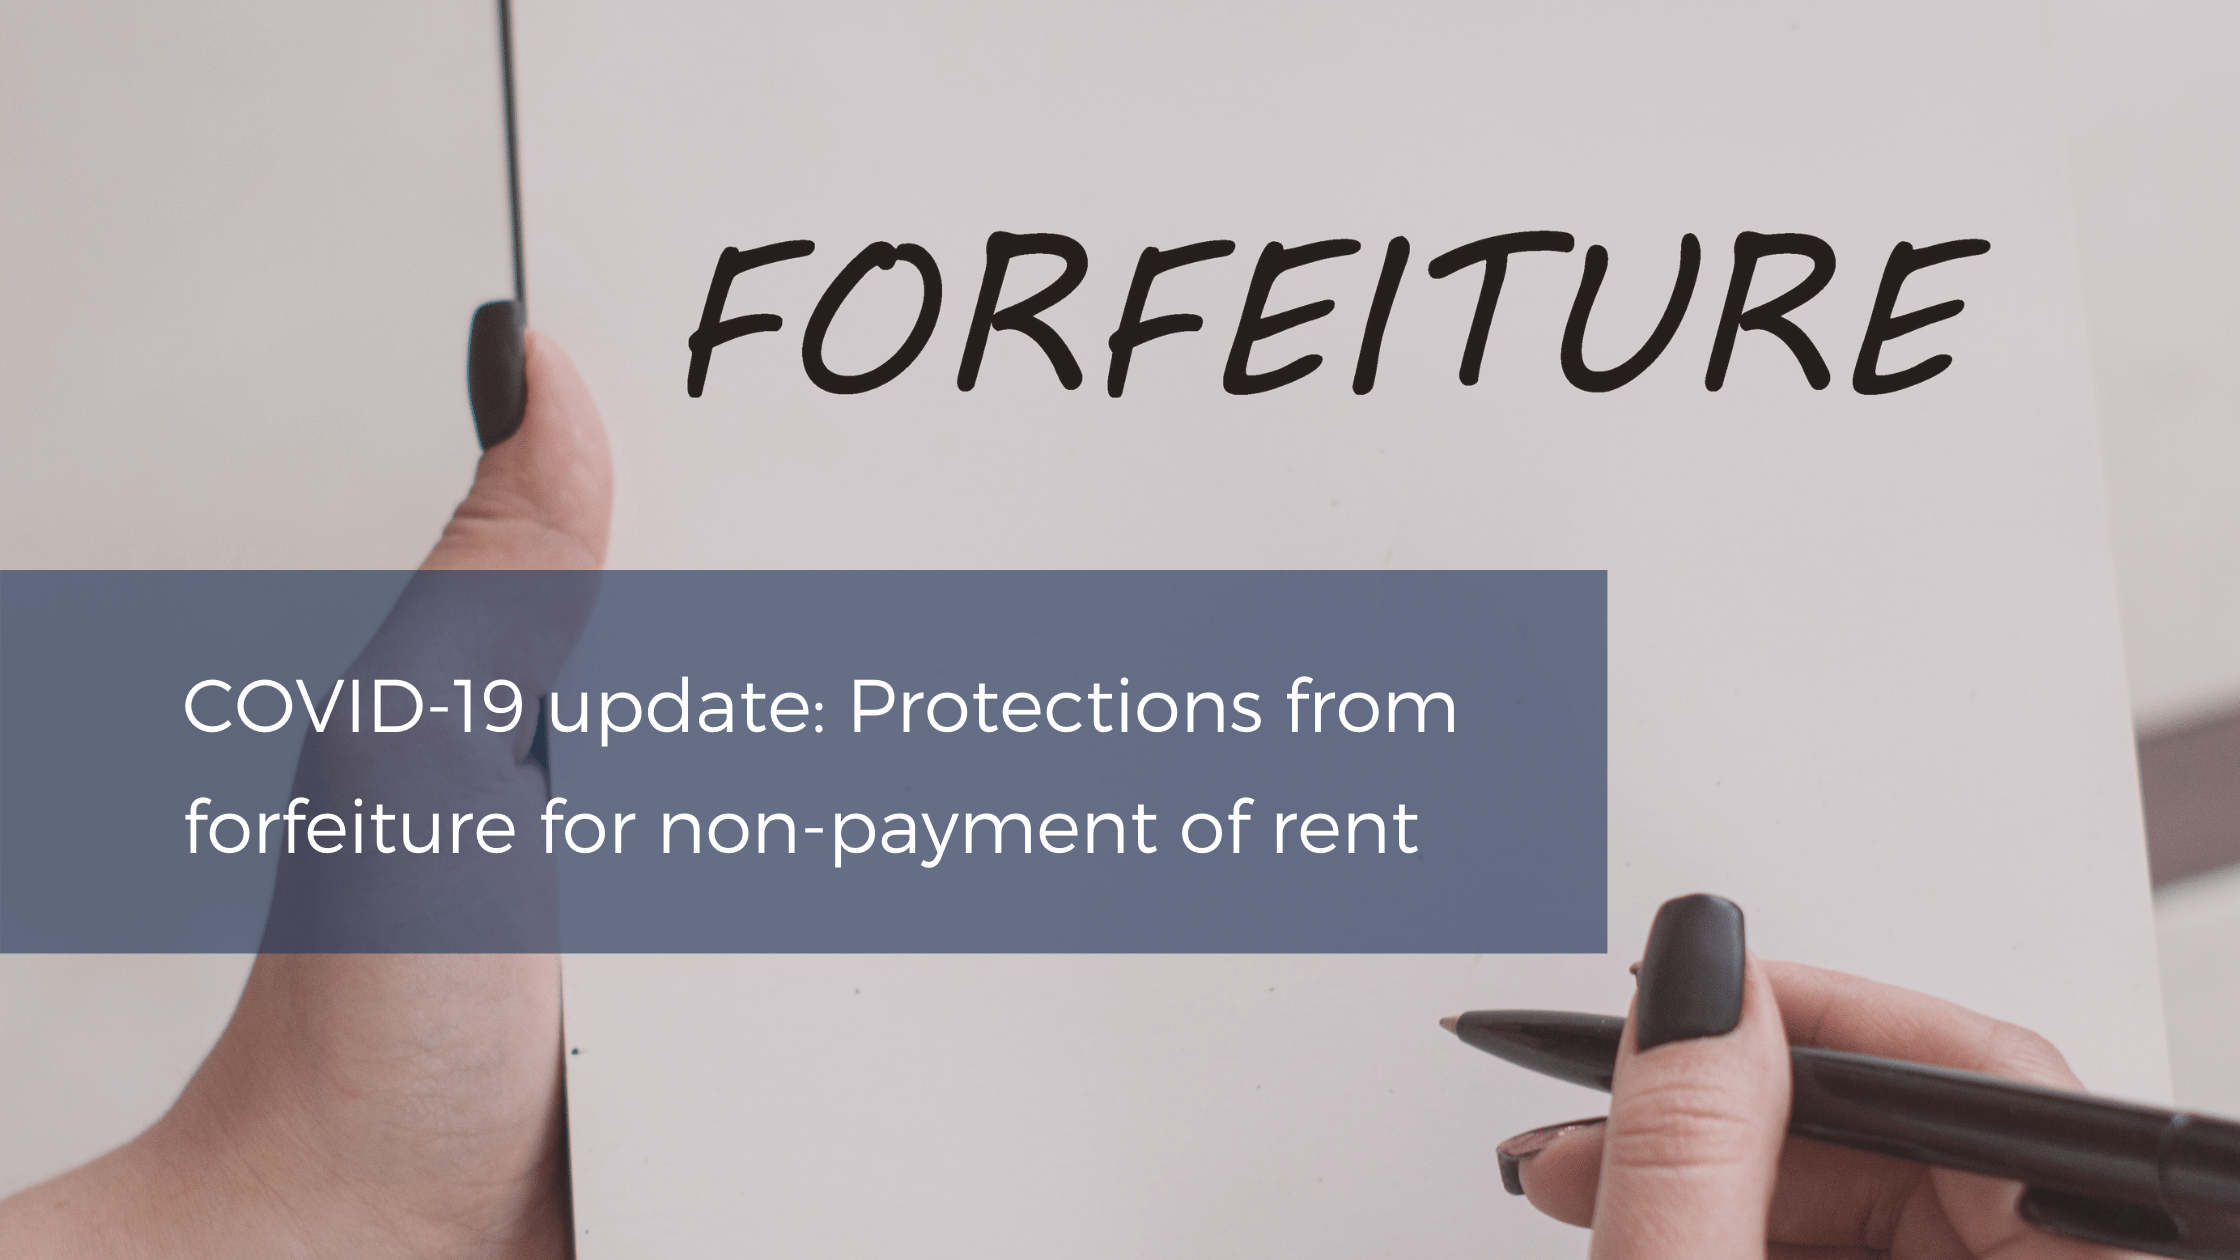 COVID-19 update Protections from forfeiture for non-payment of rent